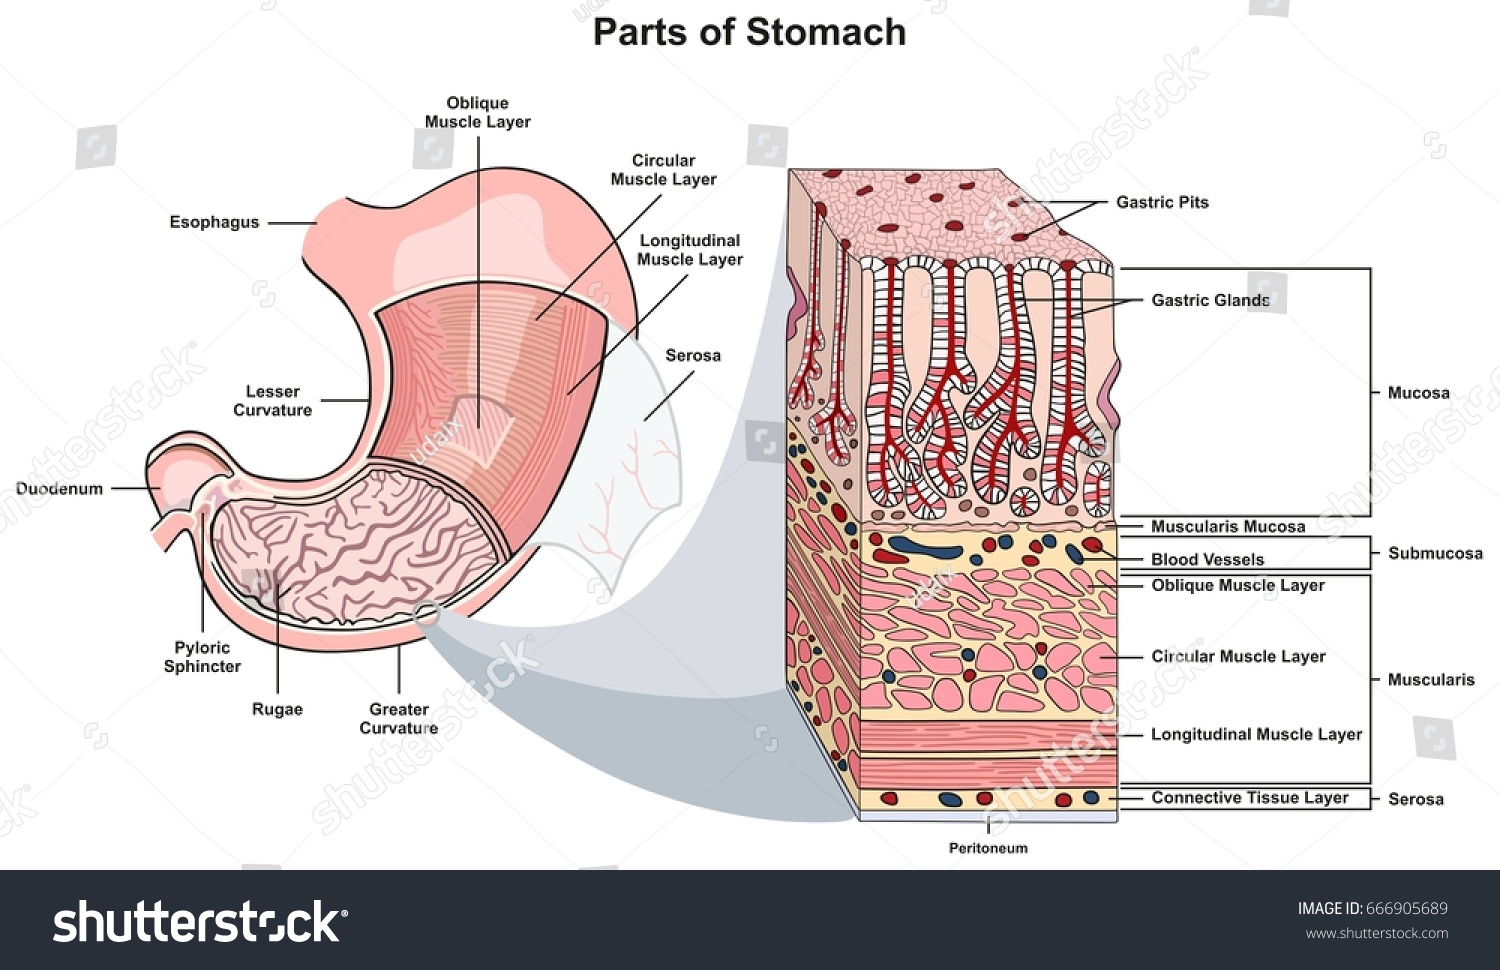 hight resolution of stomach tissue diagram wiring diagram third level adrenal gland diagram parts stomach infographic diagram including structure